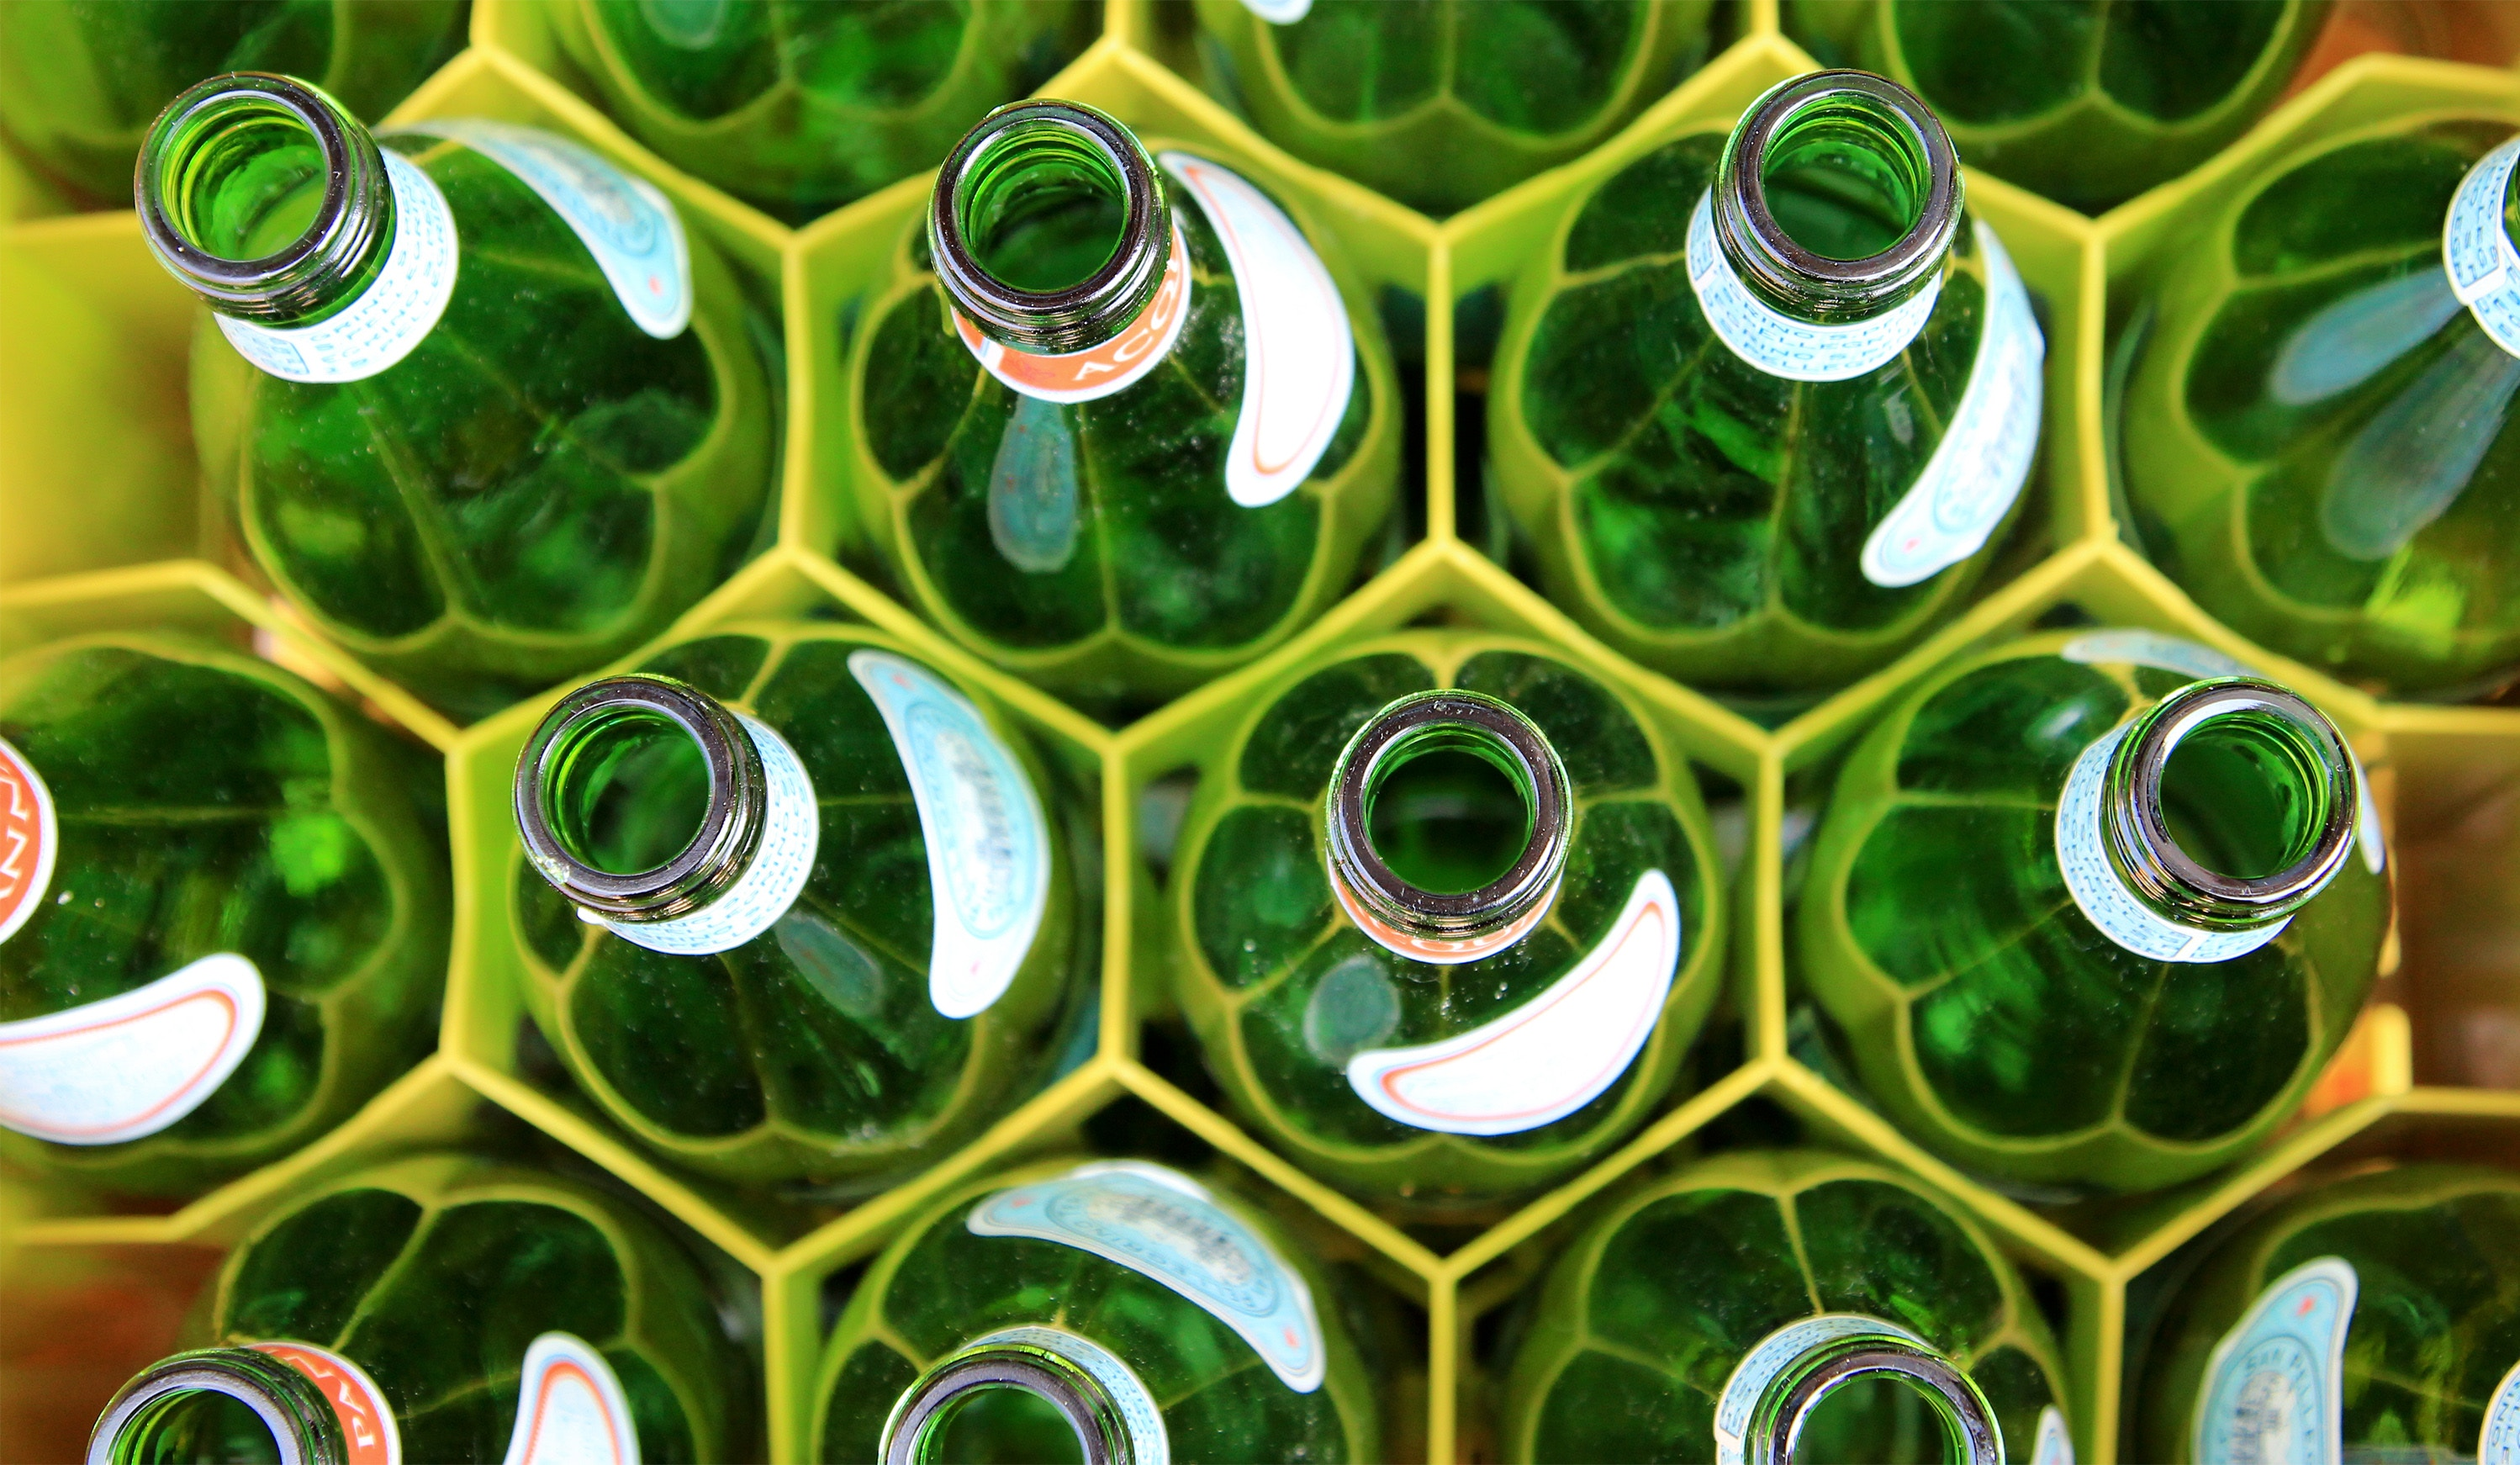 England proposes a bottle return scheme to encourage recycling